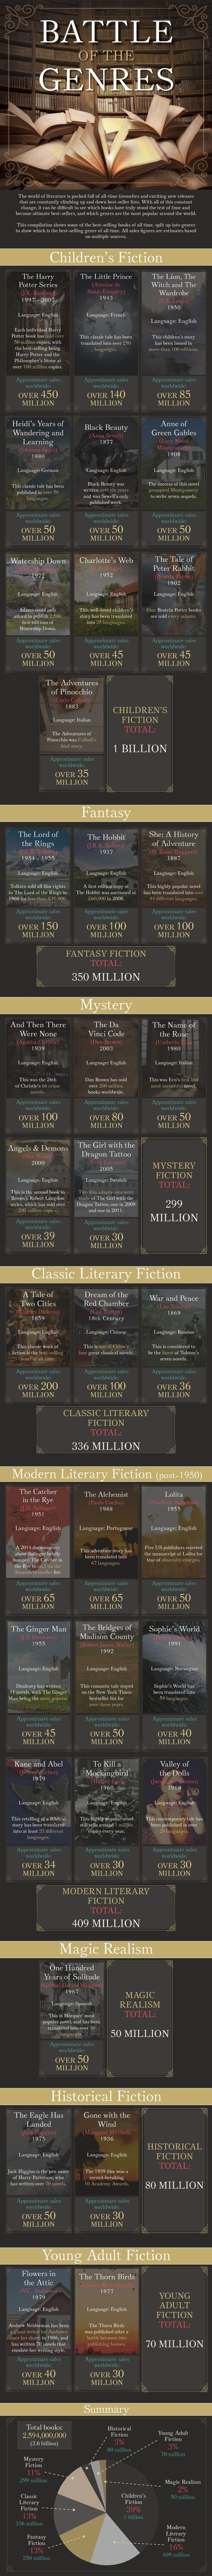 The infographic not only lists best-selling books of all time, but also estimates sales in most popular book genres.